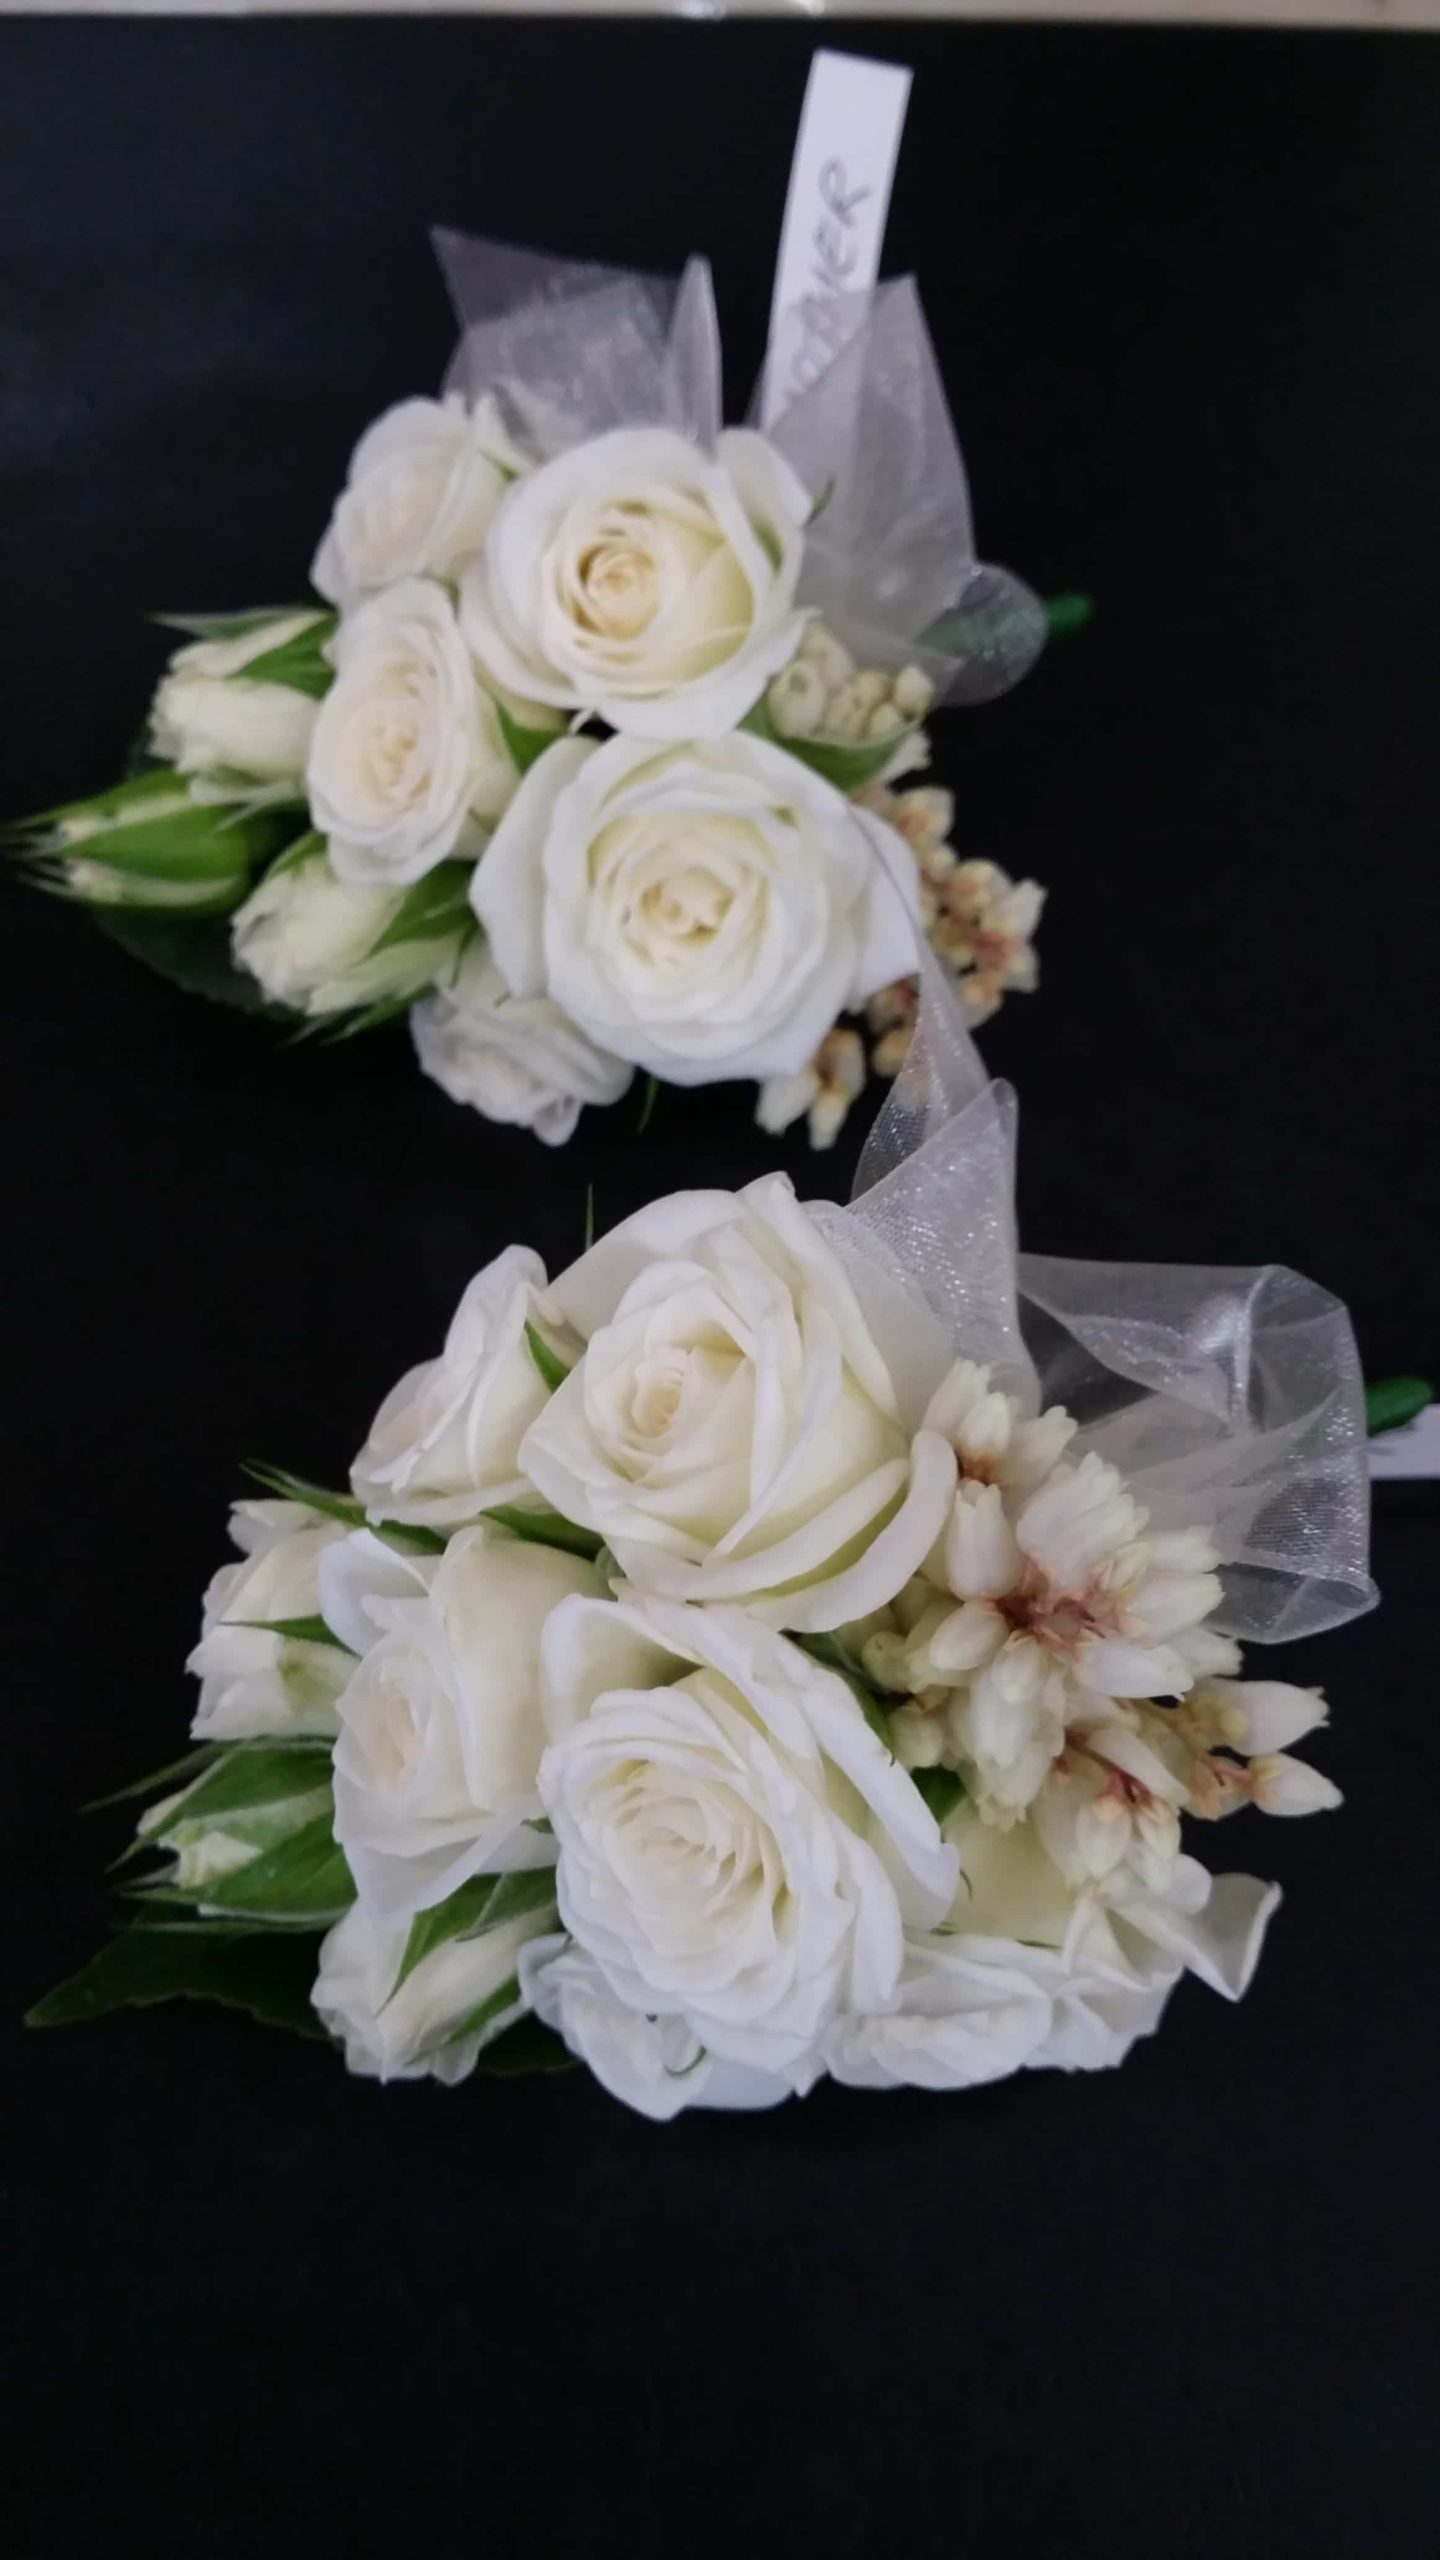 - image F.C.B.7-scaled on https://theflowermerchant.com.au